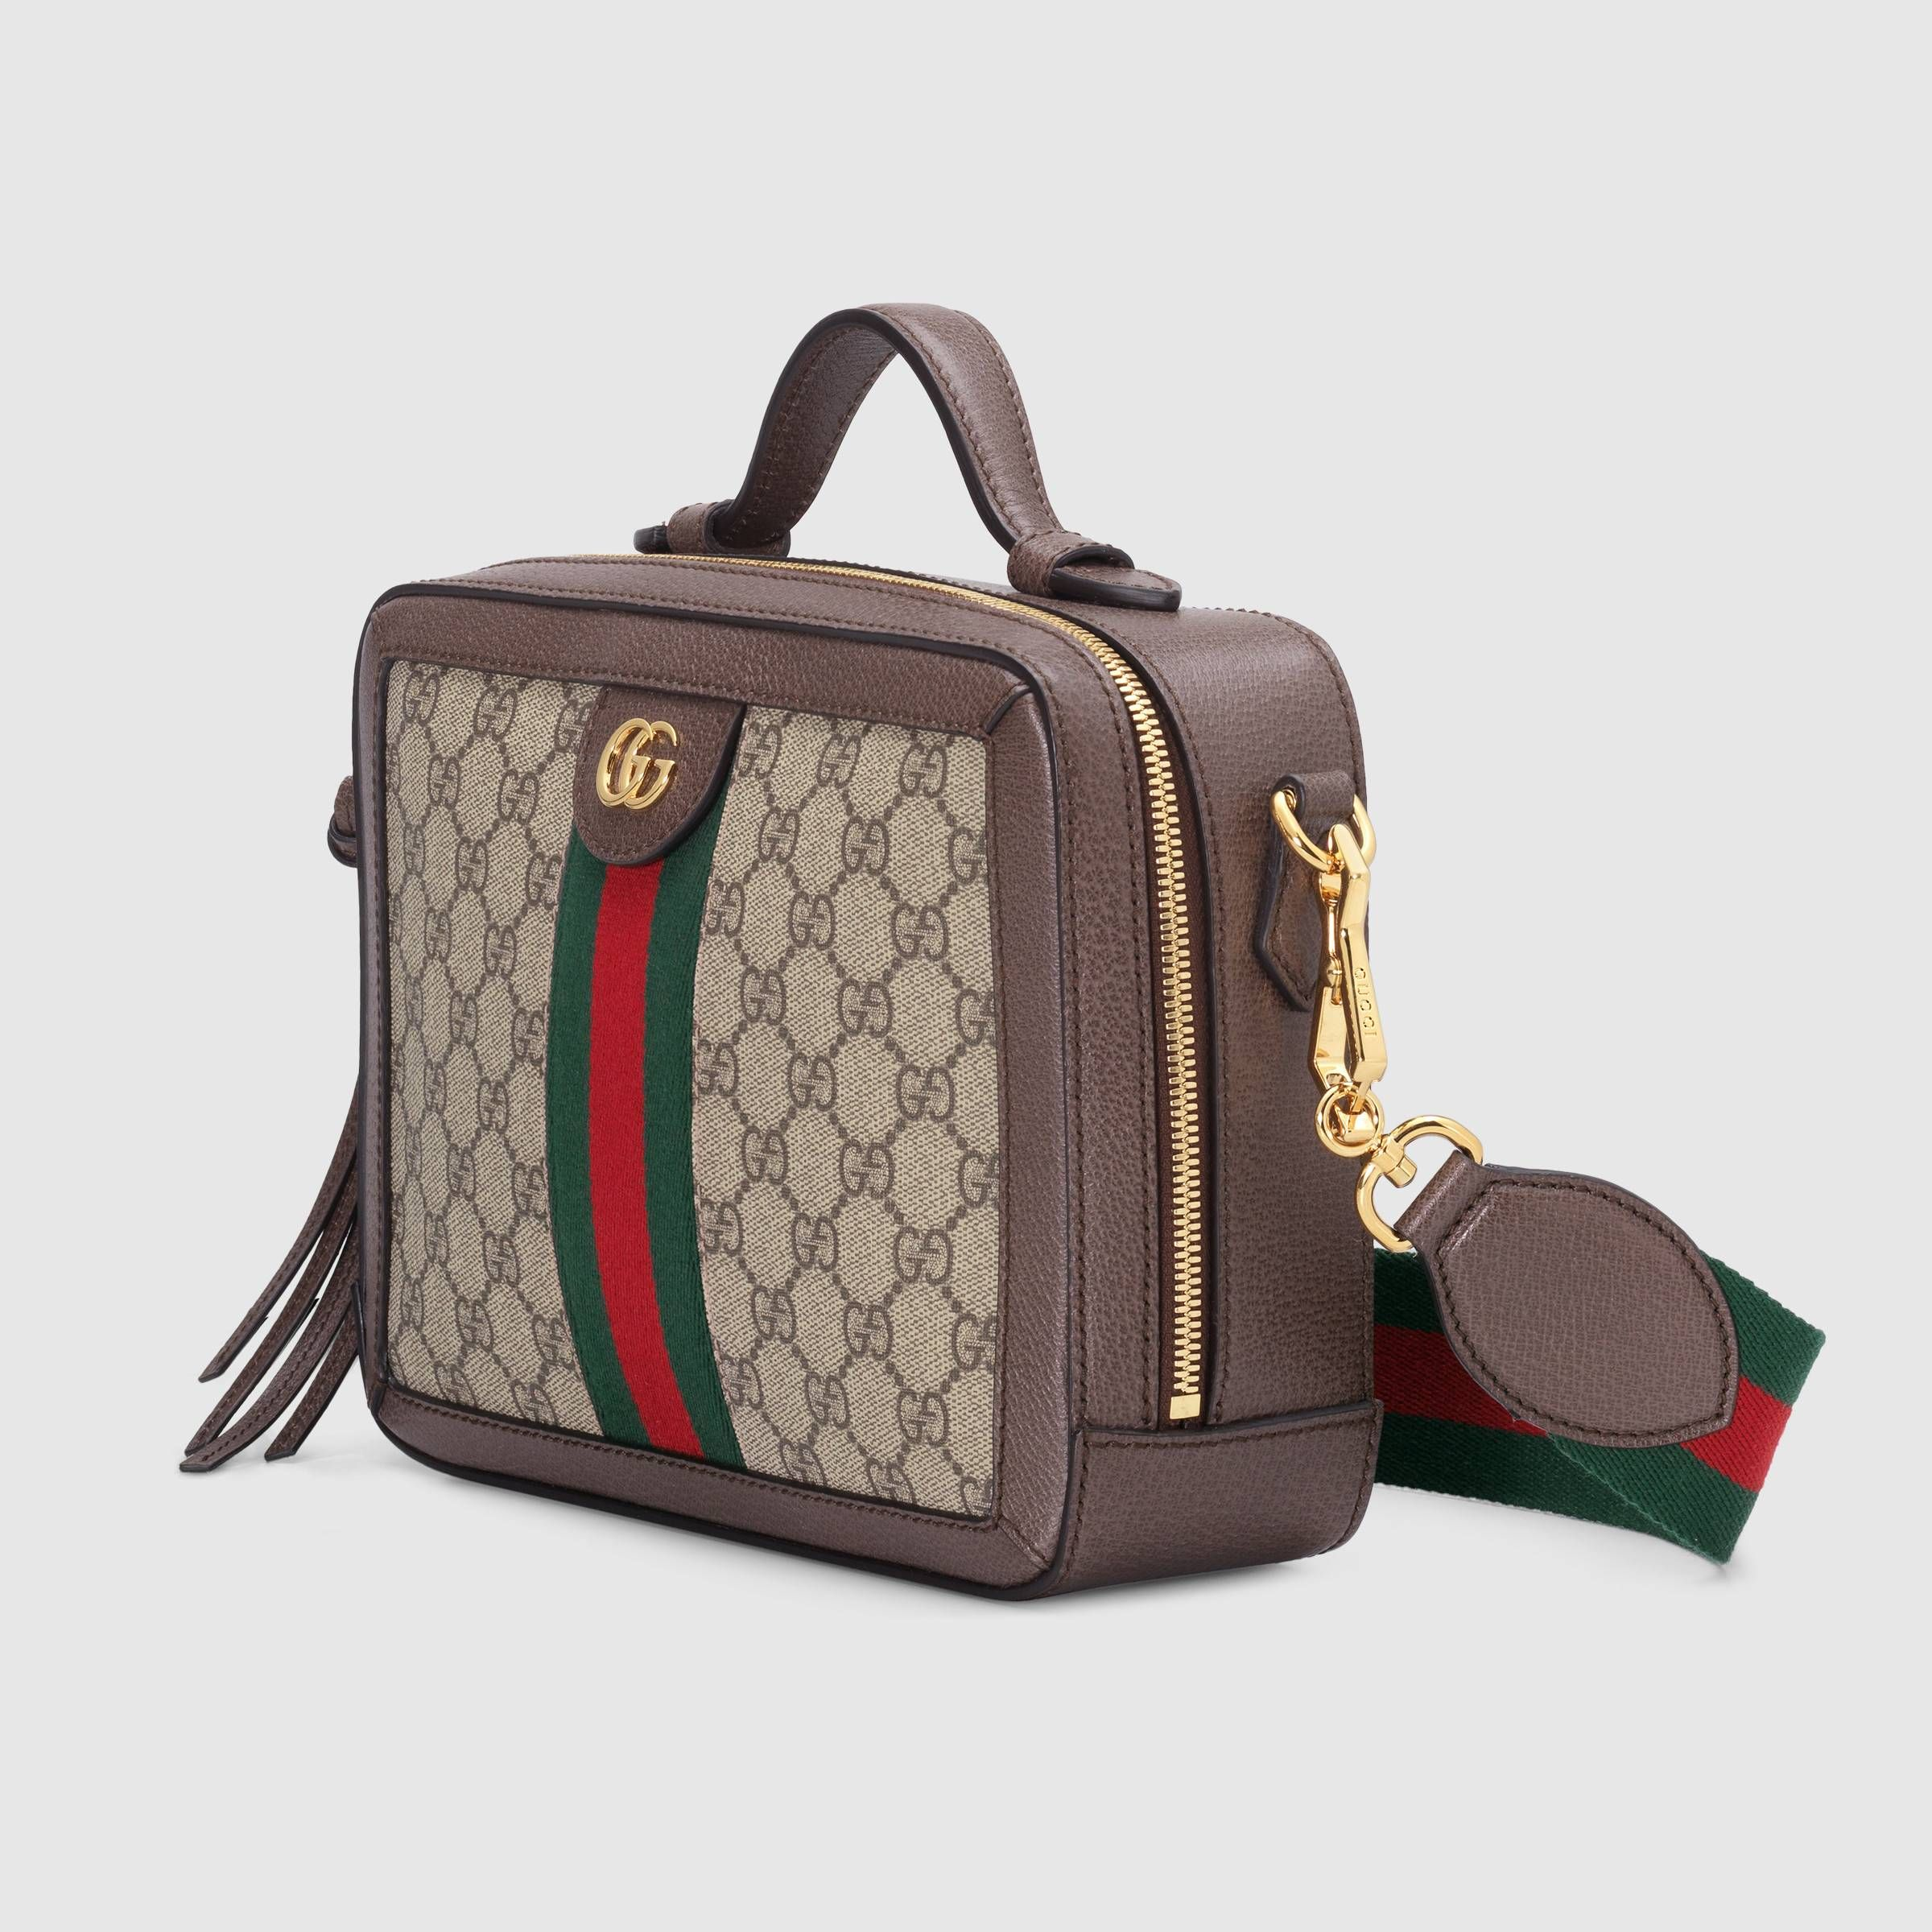 79b6b667f7555 Ophidia small GG shoulder bag - Gucci Women s Camera Bags 550622K05NG8745